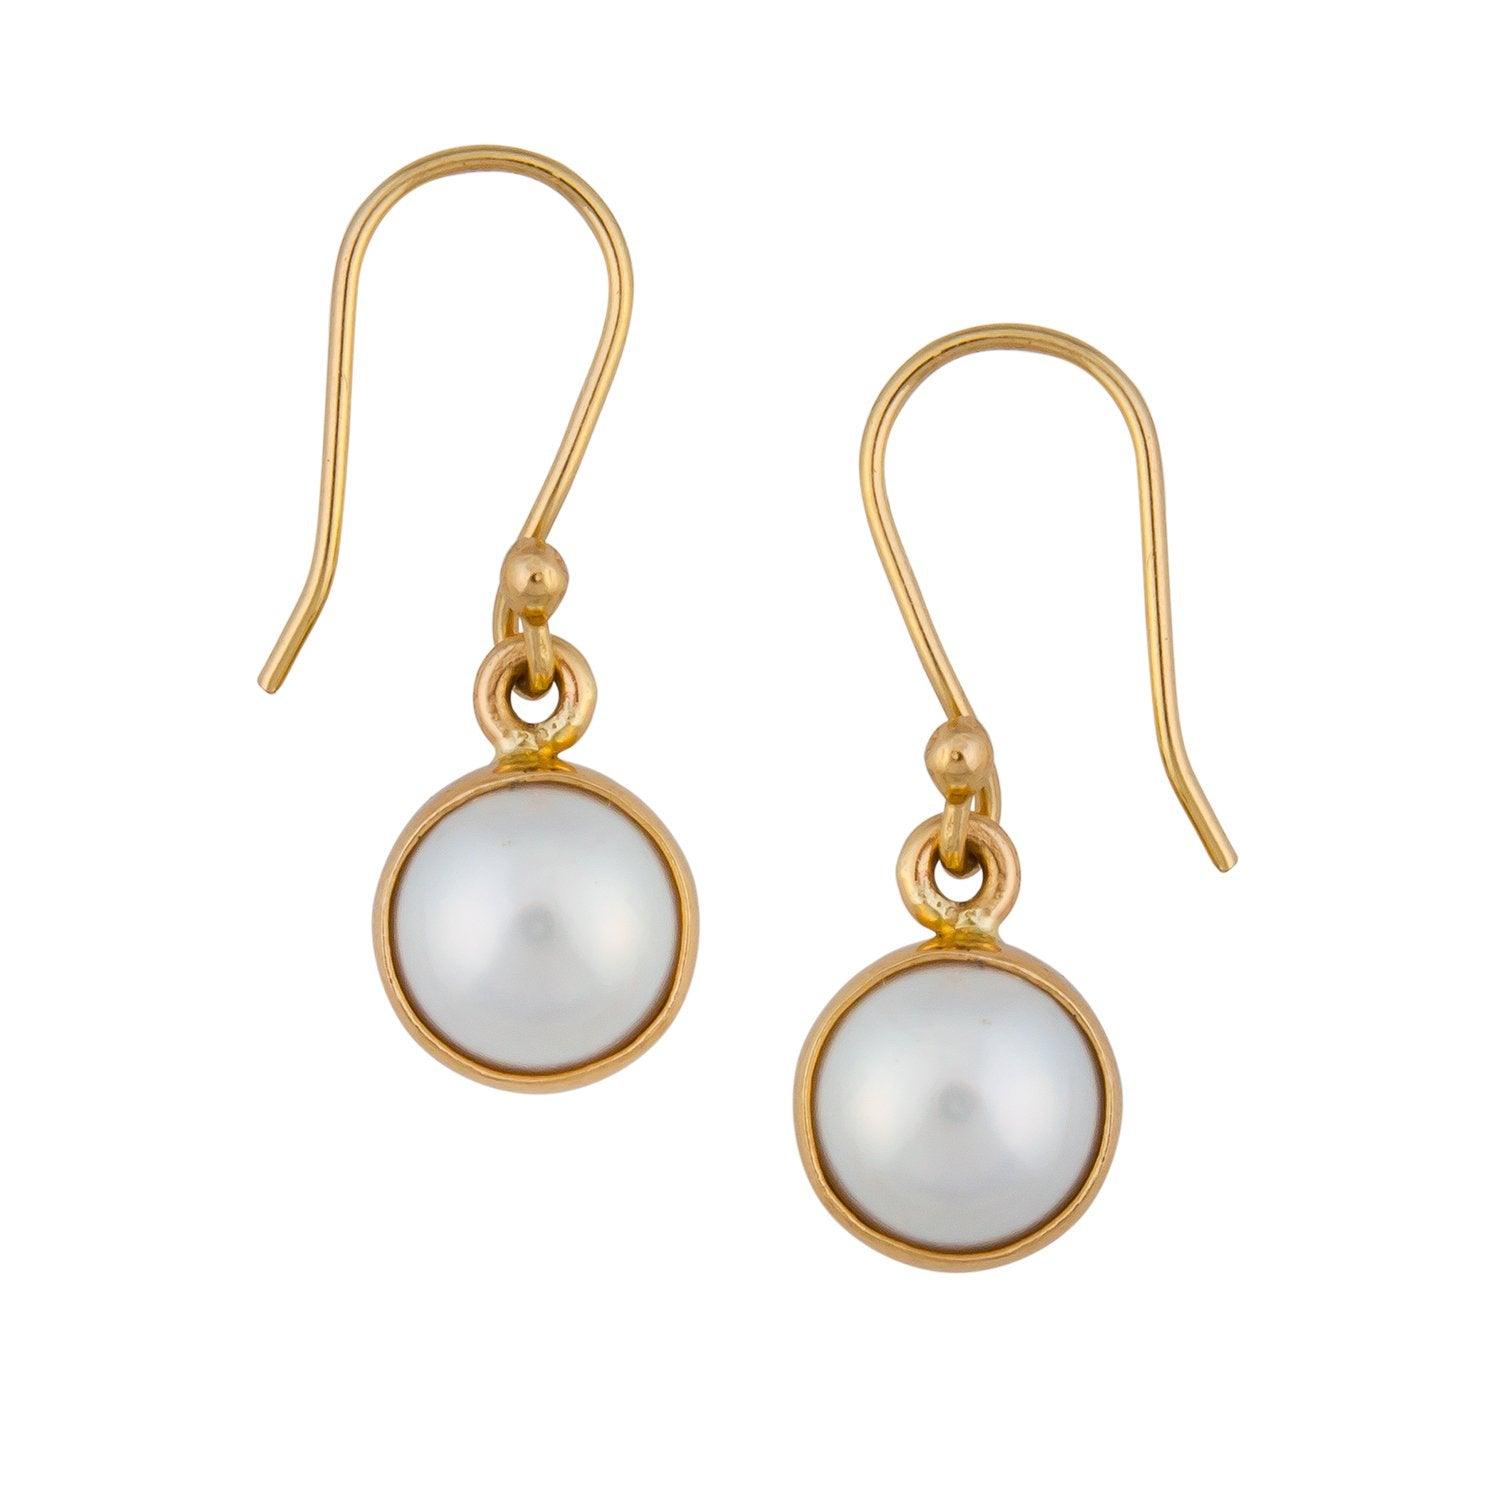 Alchemia Pearl Drop Earrings | Charles Albert Jewelry